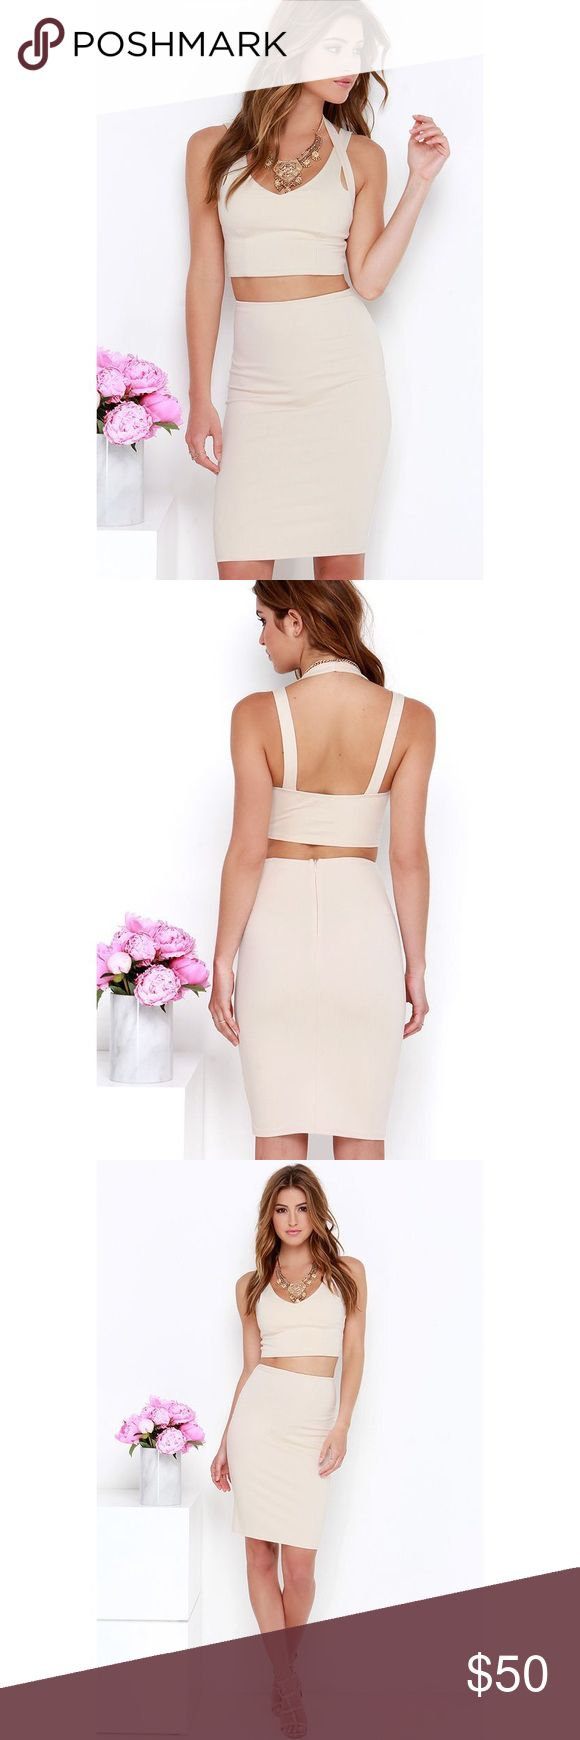 """Beige Two Piece dress Why hunt for two matching pieces, when the Piece Together Beige Two-Piece Dress does all the work for you?! Medium-weight stretch knit creates a sleek finish across tank straps and second halter strap, all atop the darted cropped bodice. Complete this sexy look with the bodycon pencil skirt. Hidden back zipper. Small top measures 14.5"""" long. Small bottom measures 22"""" long. Front of top is lined; skirt is unlined. 66% Rayon, 30% Nylon, 4% Spandex. Hand Wash Cold.    Worn…"""